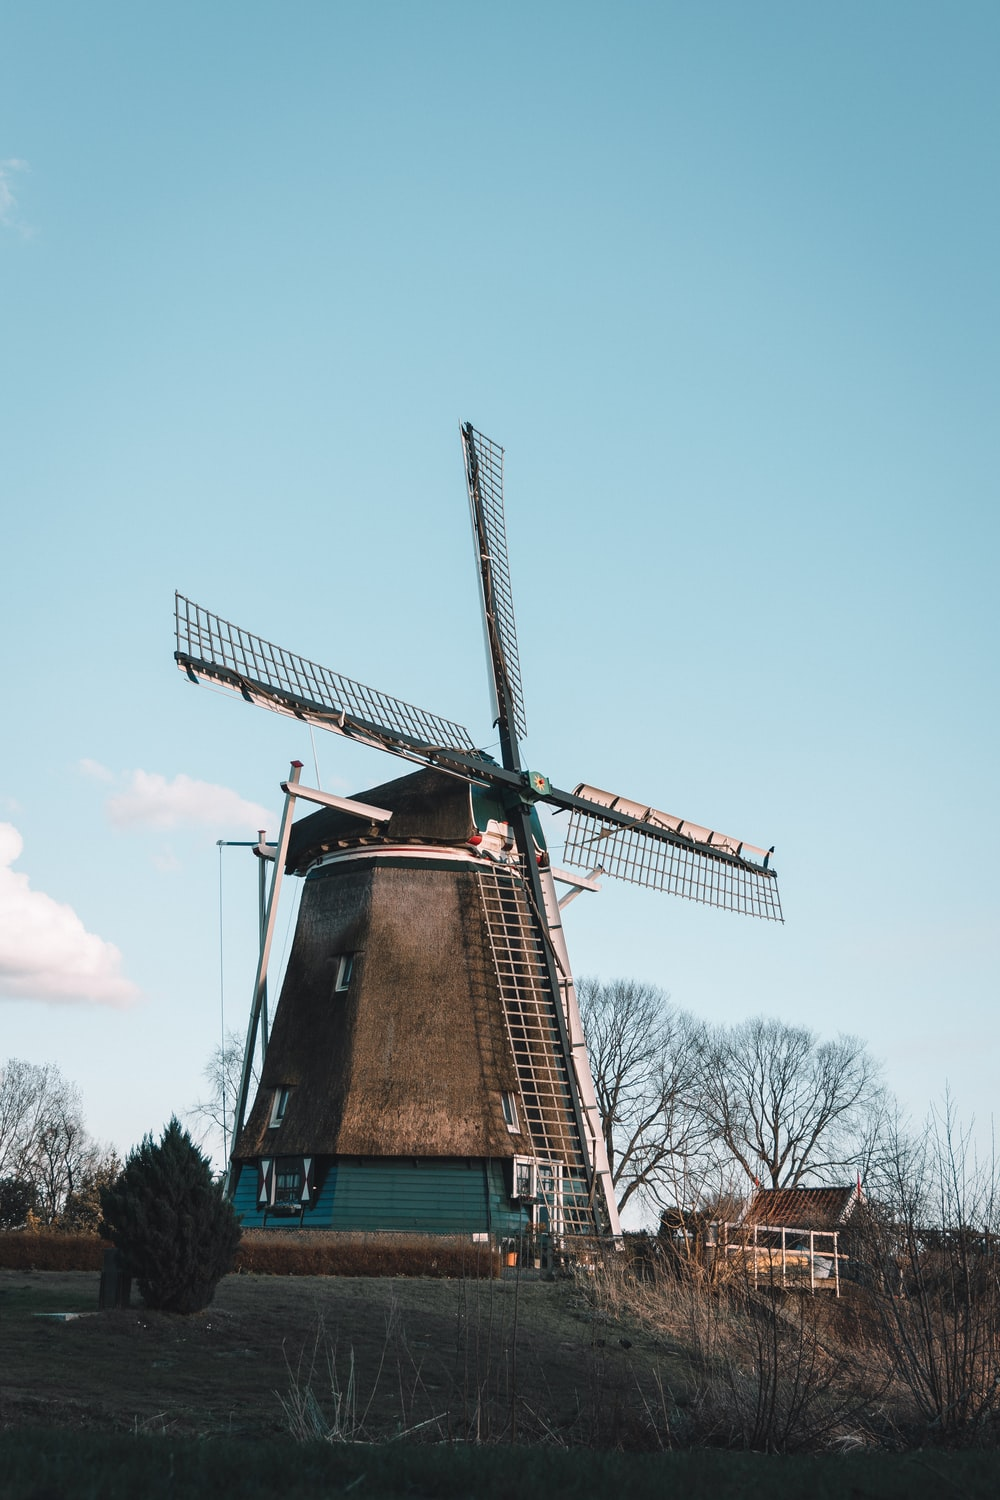 brown and green windmill under blue sky during daytime